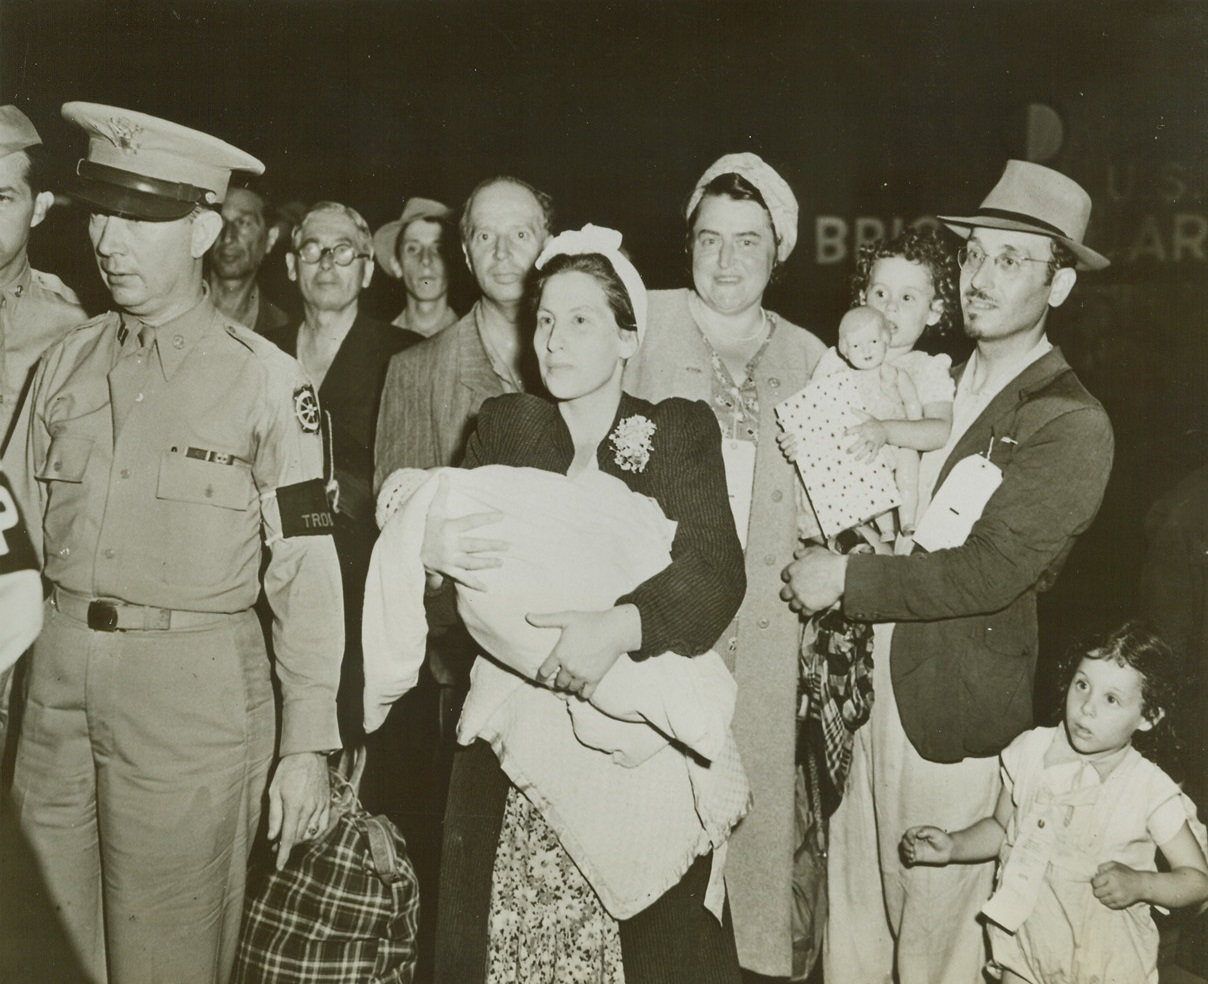 Free and Happy, 8/4/1944. Hoboken, New Jersey -- Headed for the train that is to carry them to Fort Ontario near Oswego, New York, is this family, part of almost 1,000 refugees from Italy who will remain in this country for the duration of the war. They are (left to right): Mrs. Netta Rothchild, holding her four-weeks old daughter Gratzia; and Mr. Isreal Rothchild, carrying his daughter Reneta as another daughter, Fanny, walks beside him. Credit: ACME;